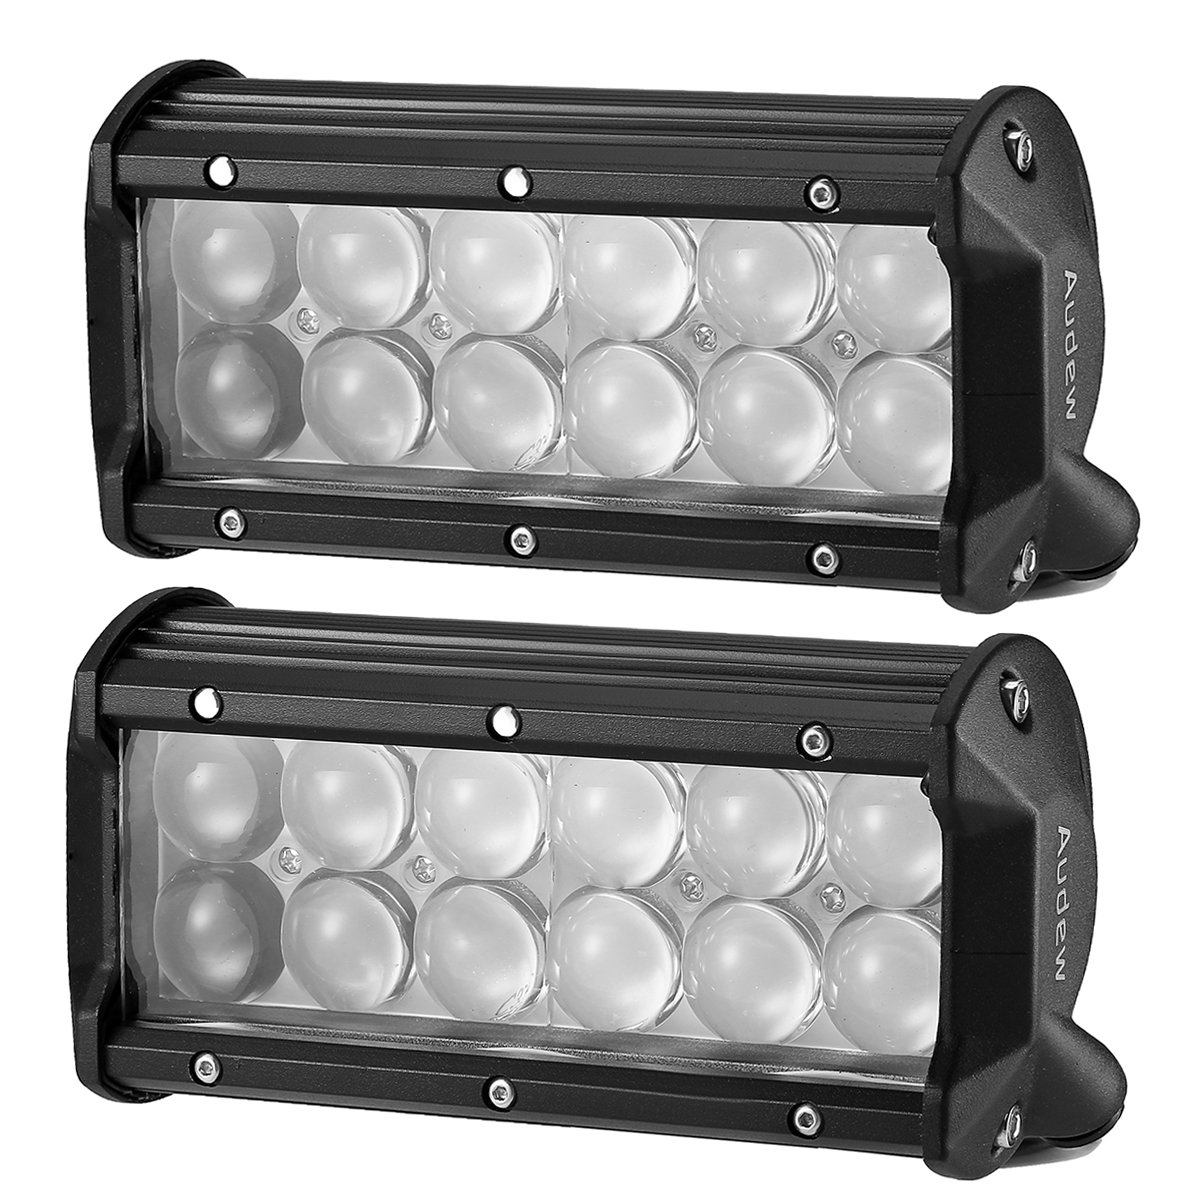 AUDEW 2PCS 36W LED Light Bar Spotlight LED Work Light 6.5 inch 4D PC Lens 3600LM IP68 for Truck Jeep Off-Road ATV 4WD 4x4 SUV